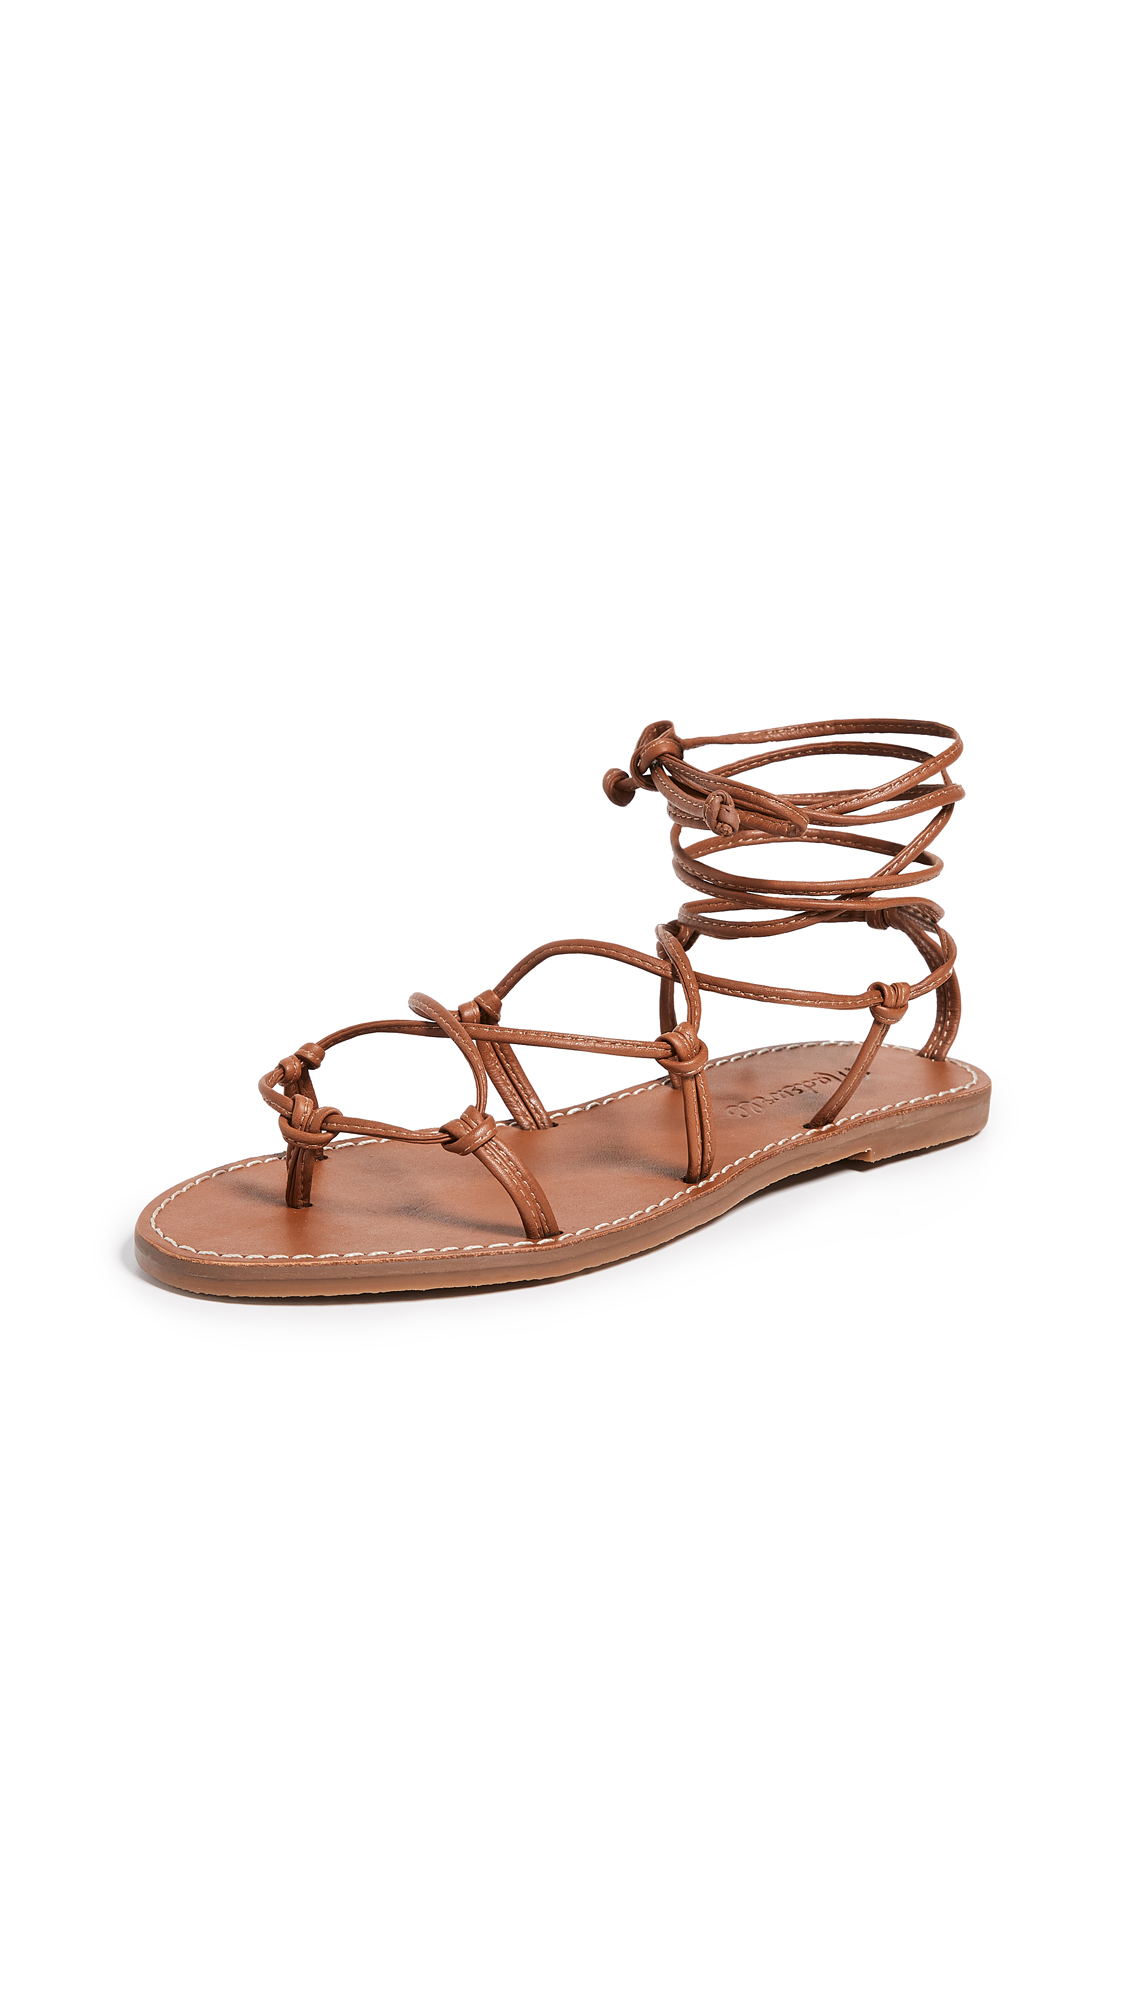 Buy Madewell The Boardwalk Lace Up Sandals online, shop Madewell